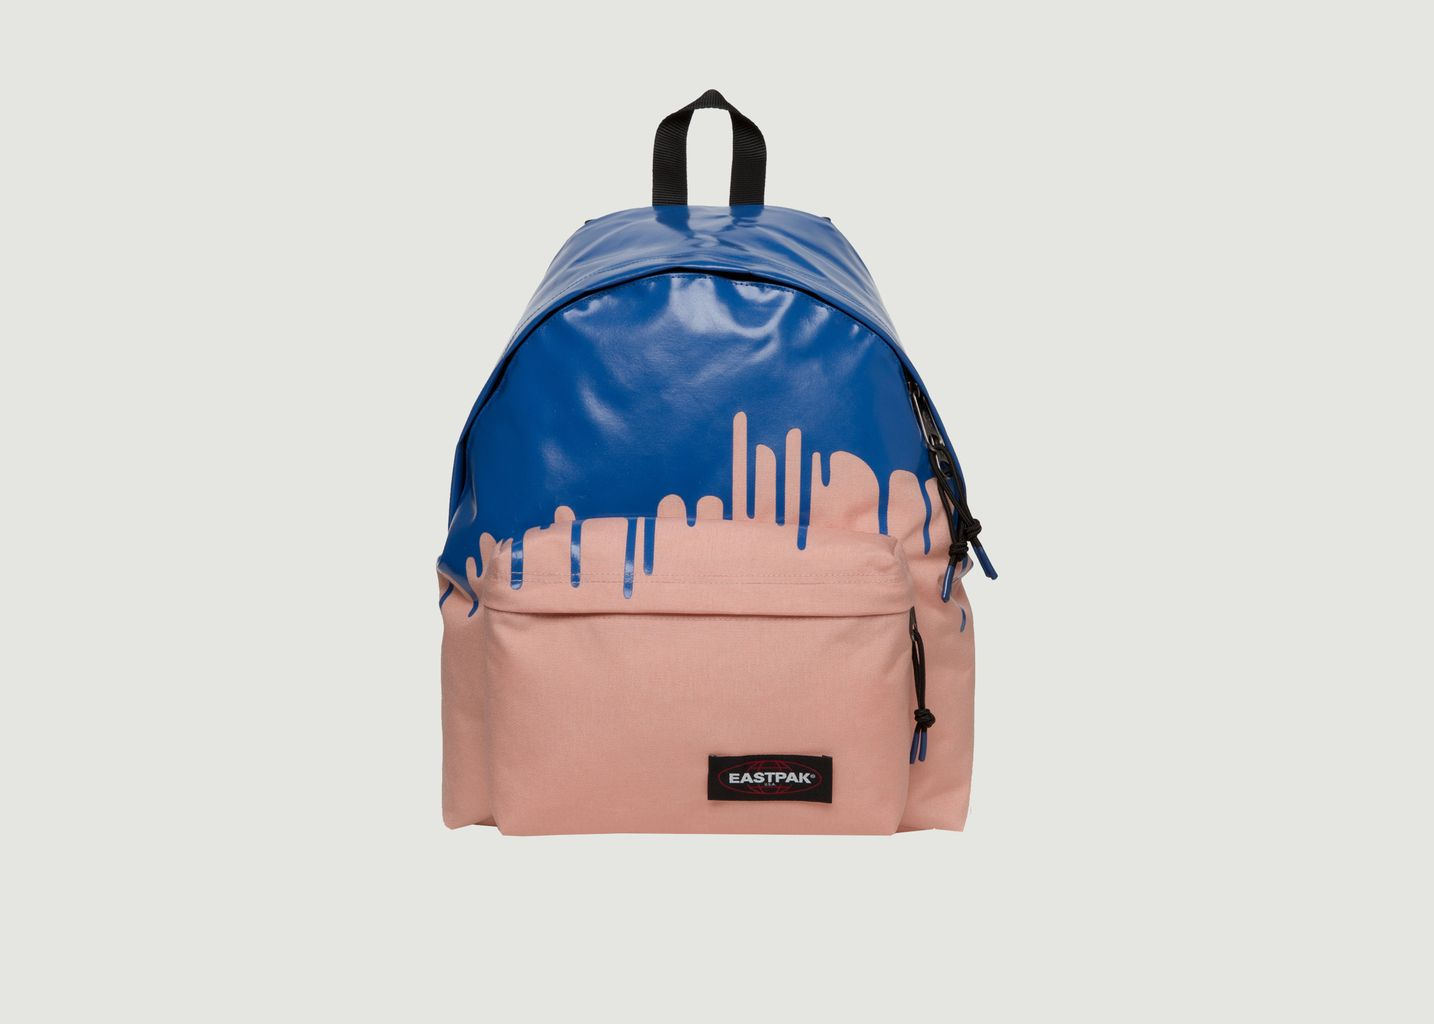 edfbaa5a3d Eastpak Sac Dos À L'exception Padded Rose Pak'r Painted xrw4YnqUCw